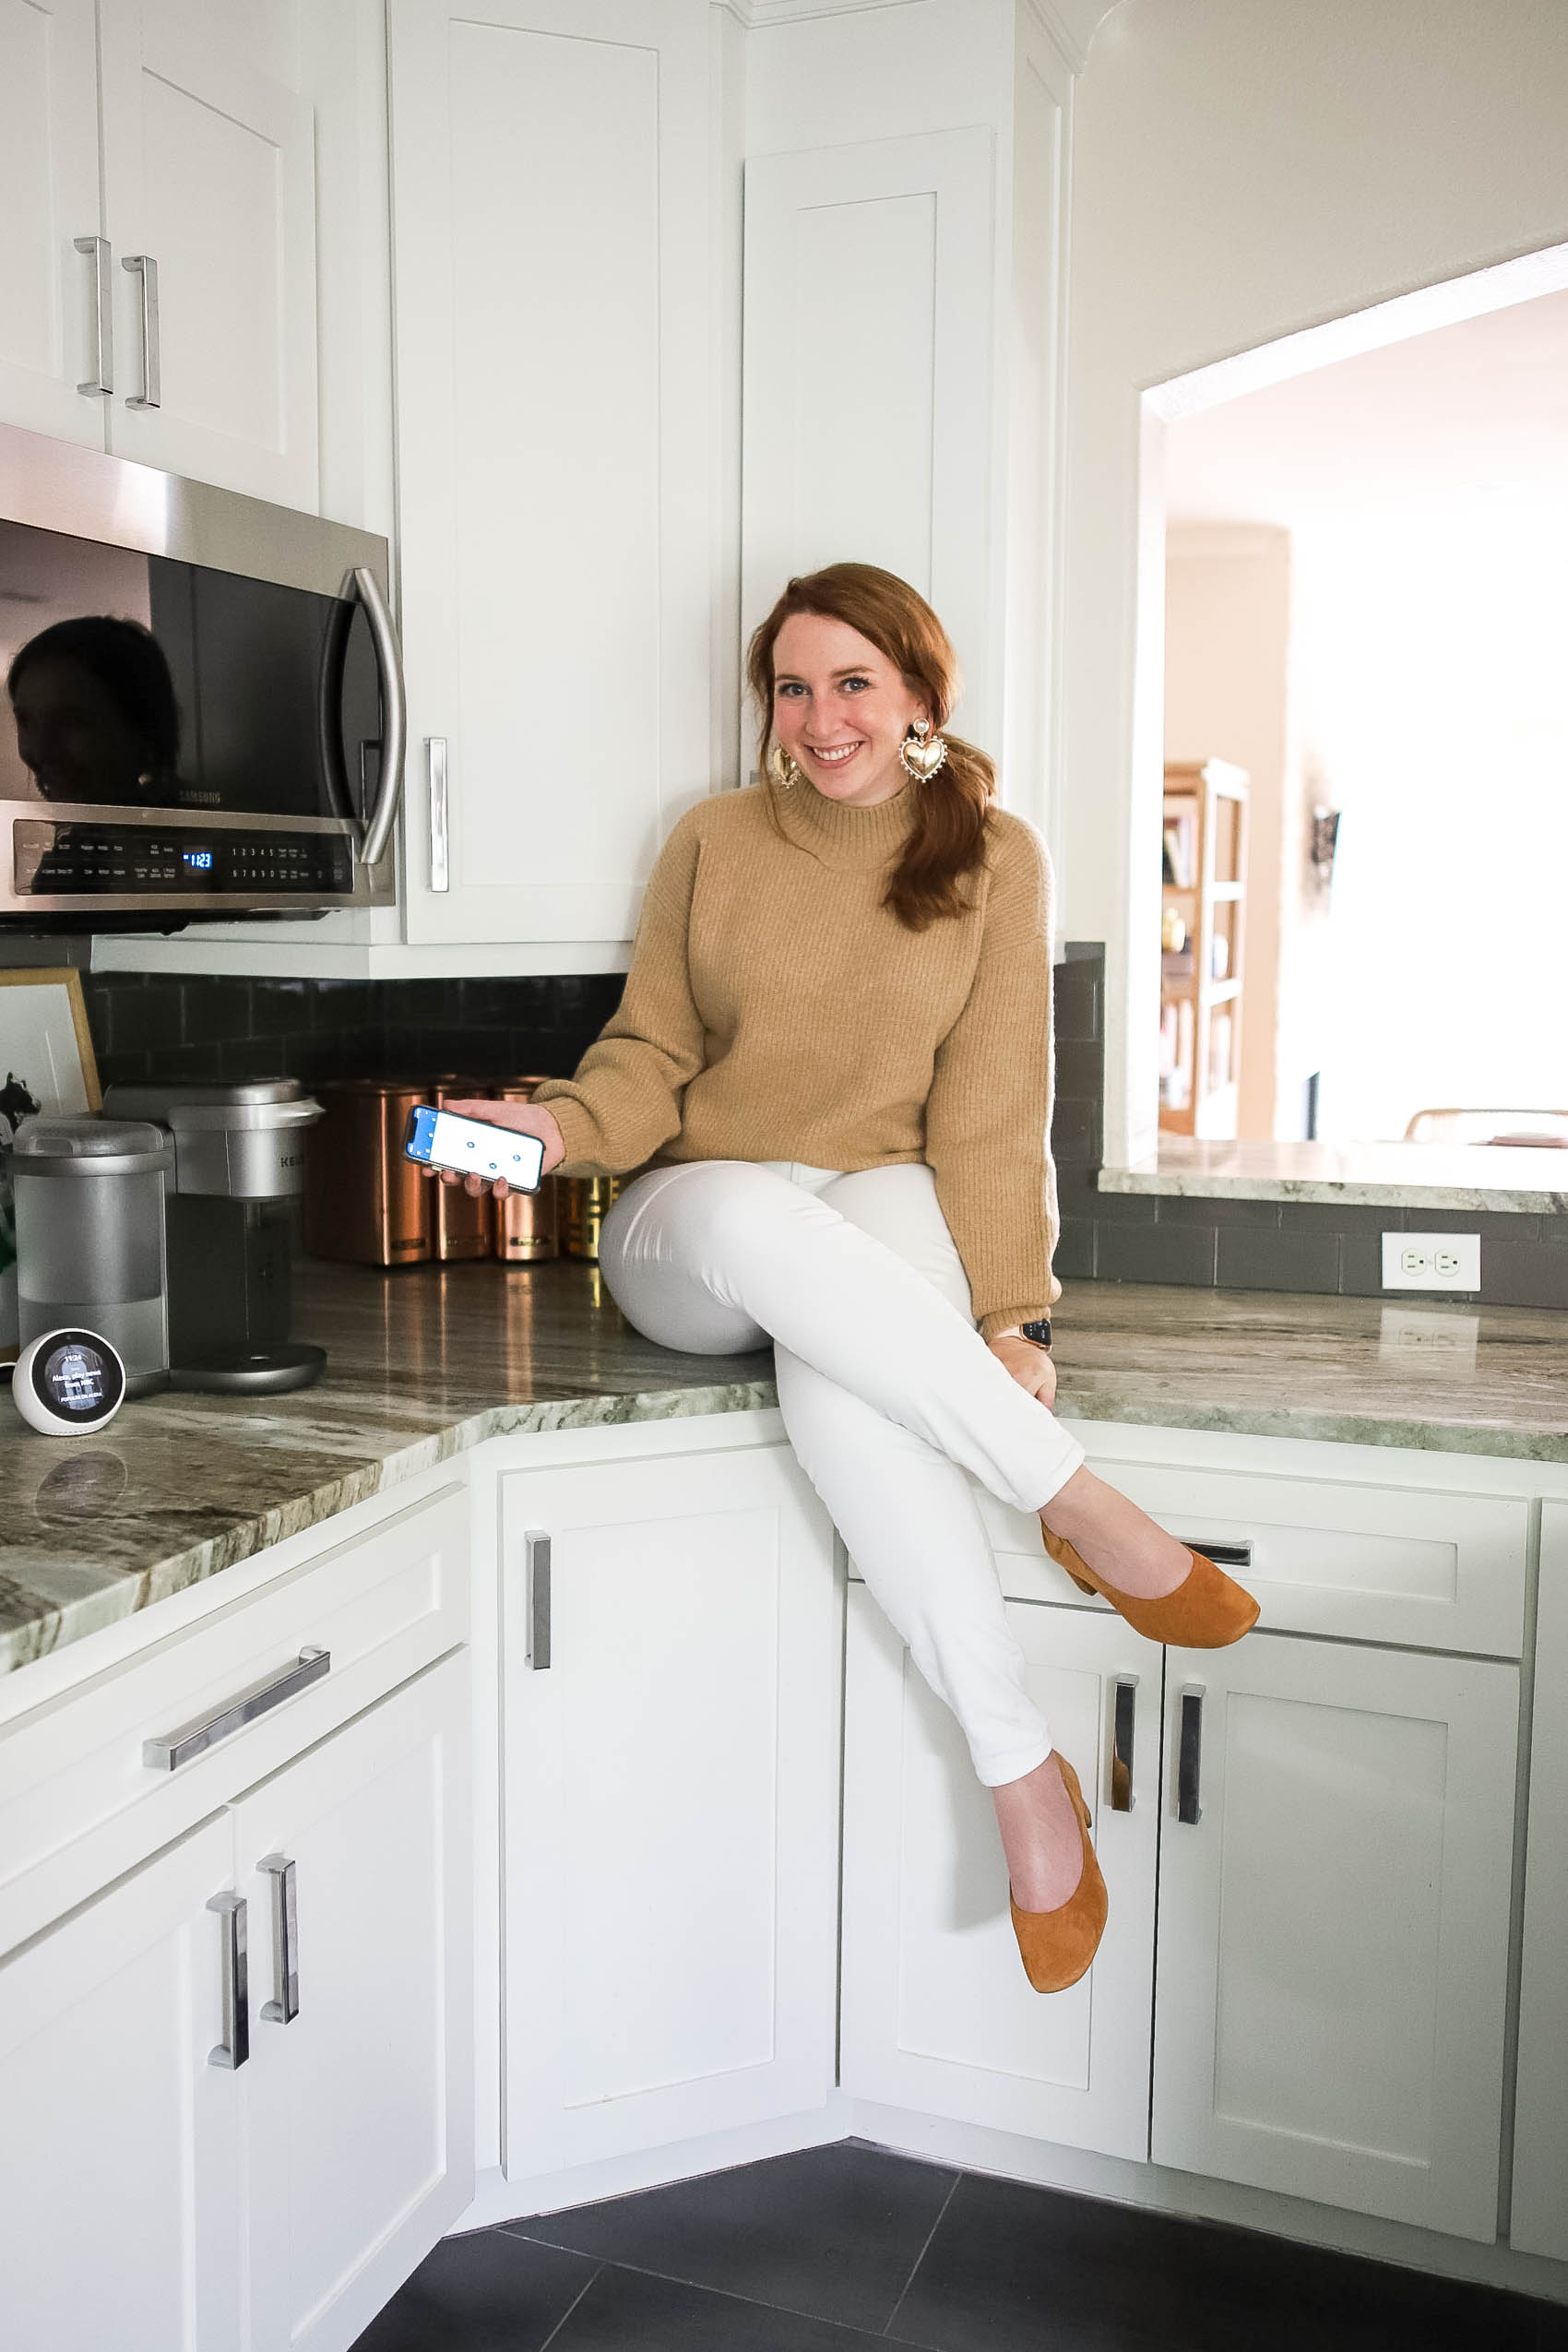 Blogger sharing favorite smart home devices while sitting on kitchen counter, wearing fall outfit comprised of camel-colored mock neck sweater, white jeans, and block heels.